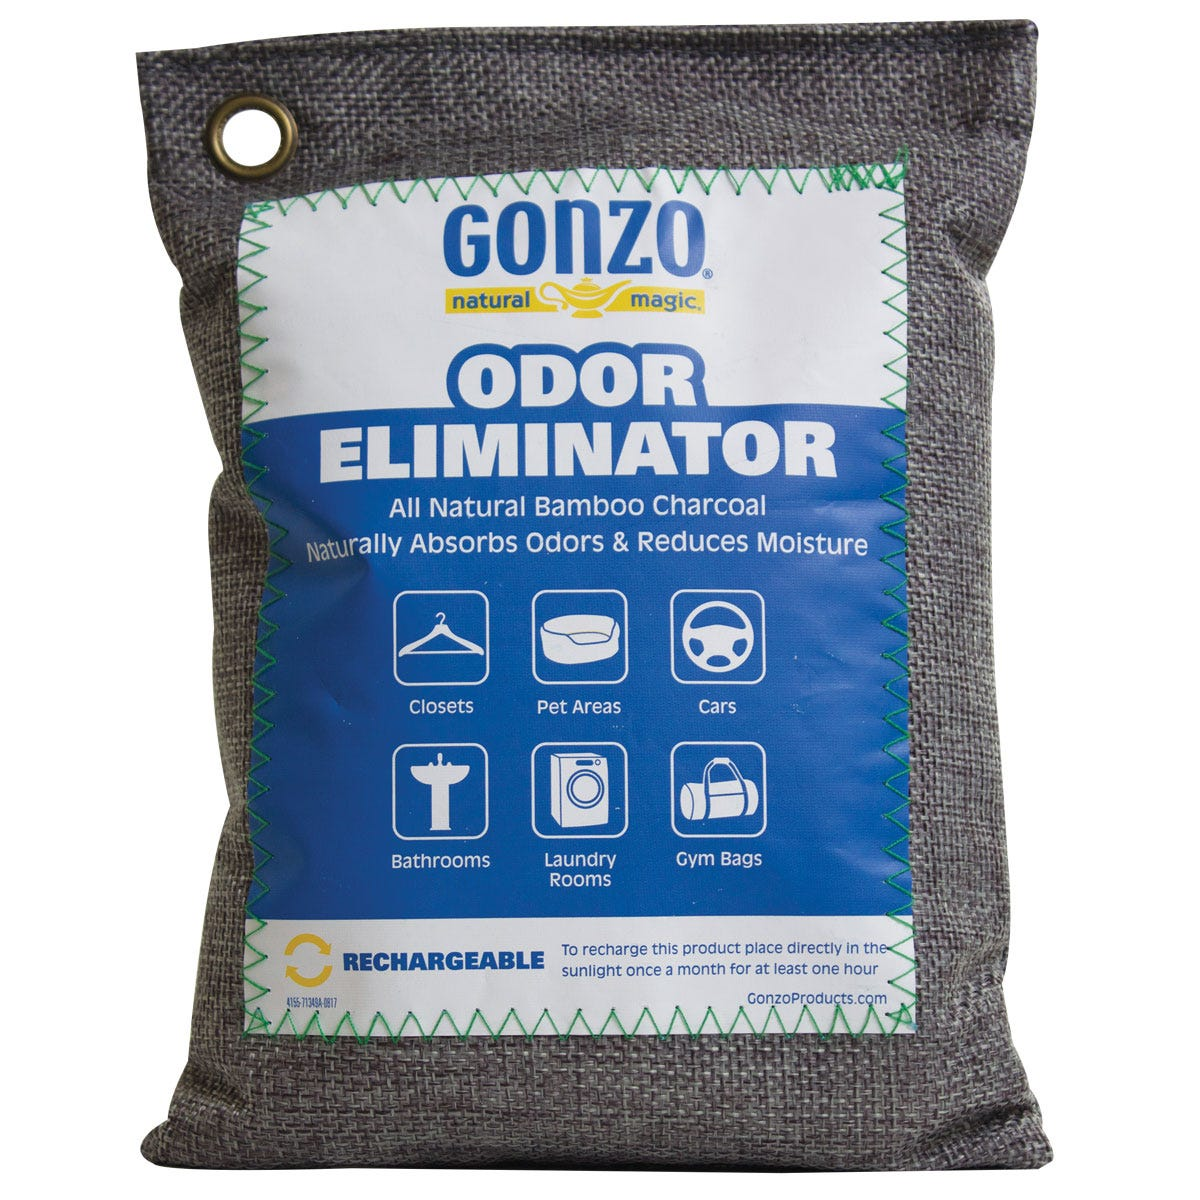 https://googone.com/media/catalog/product/b/a/bamboo-charcoal-odor-eliminator-medium_bag.jpg